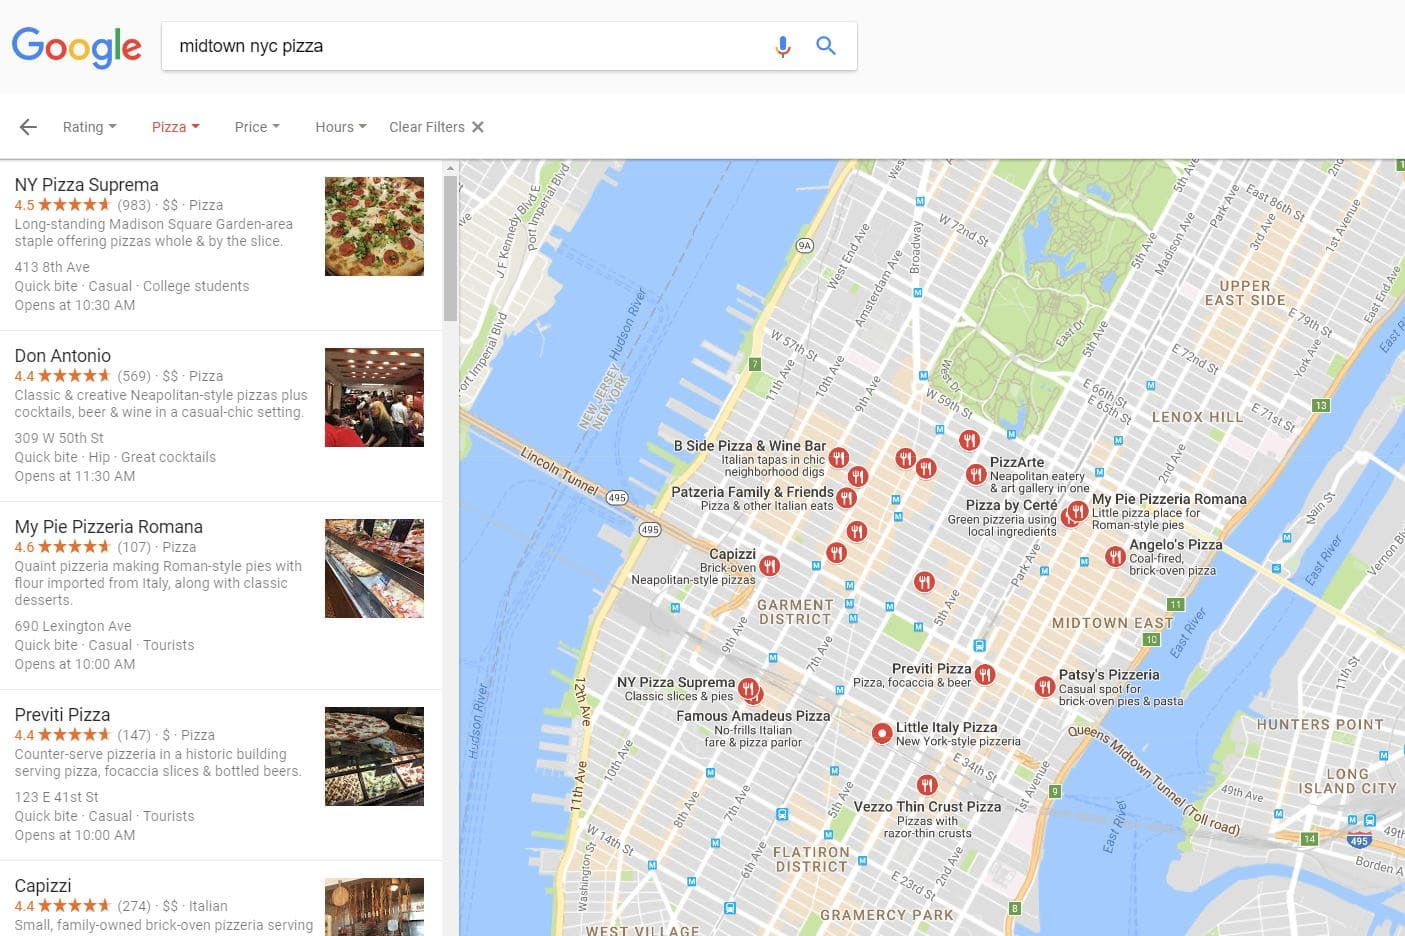 Google Local Search results break out to offer the most relevant business information in your area